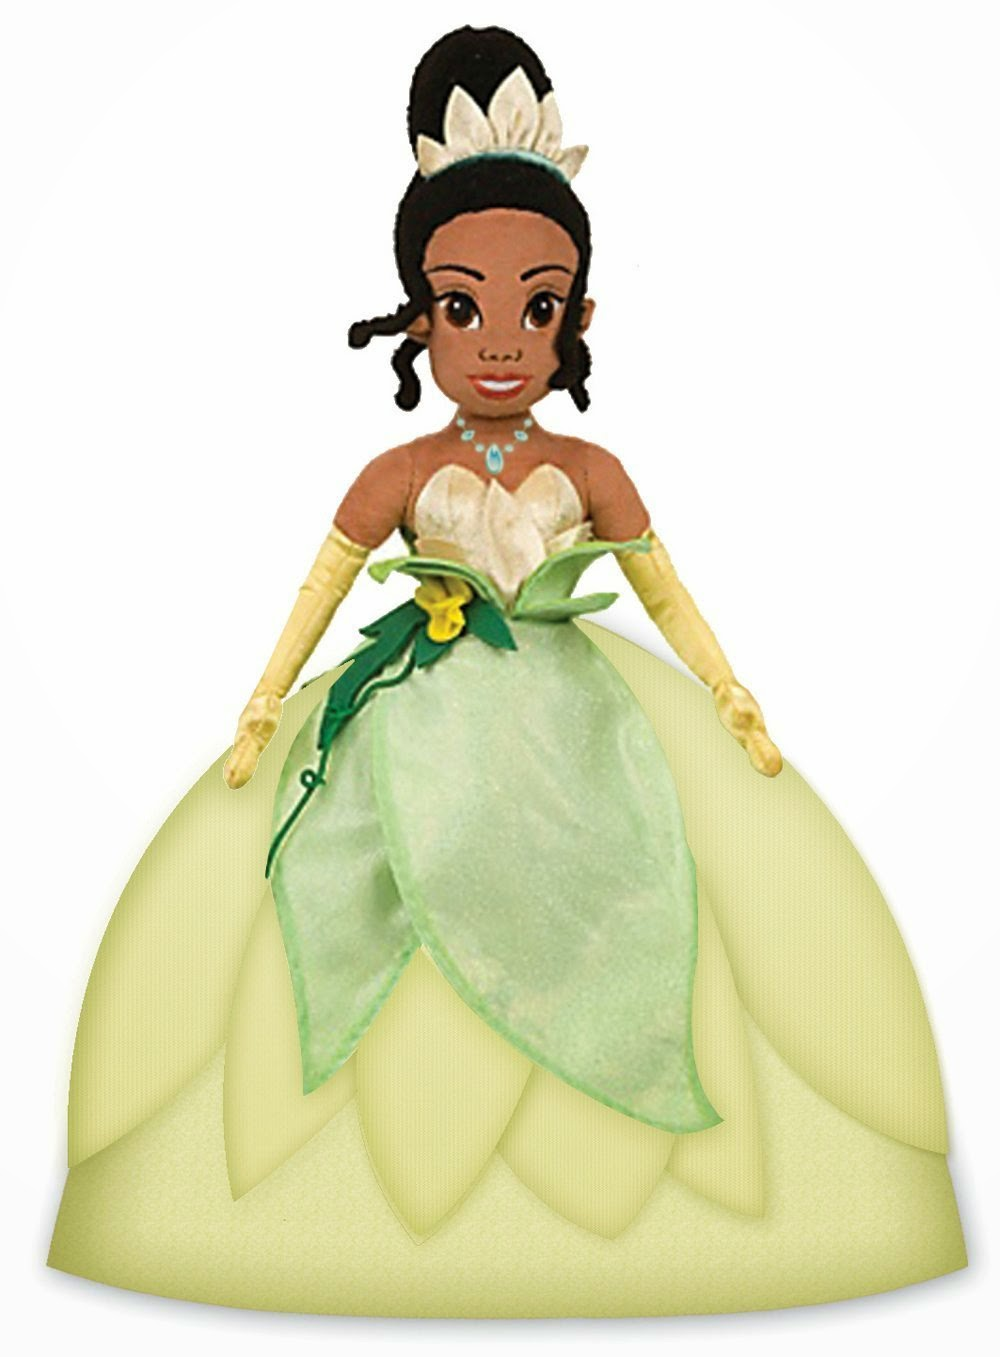 Princess And The Frog Bedroom Decor Bedroom Decor Ideas And Designs How To Decorate A Disneys